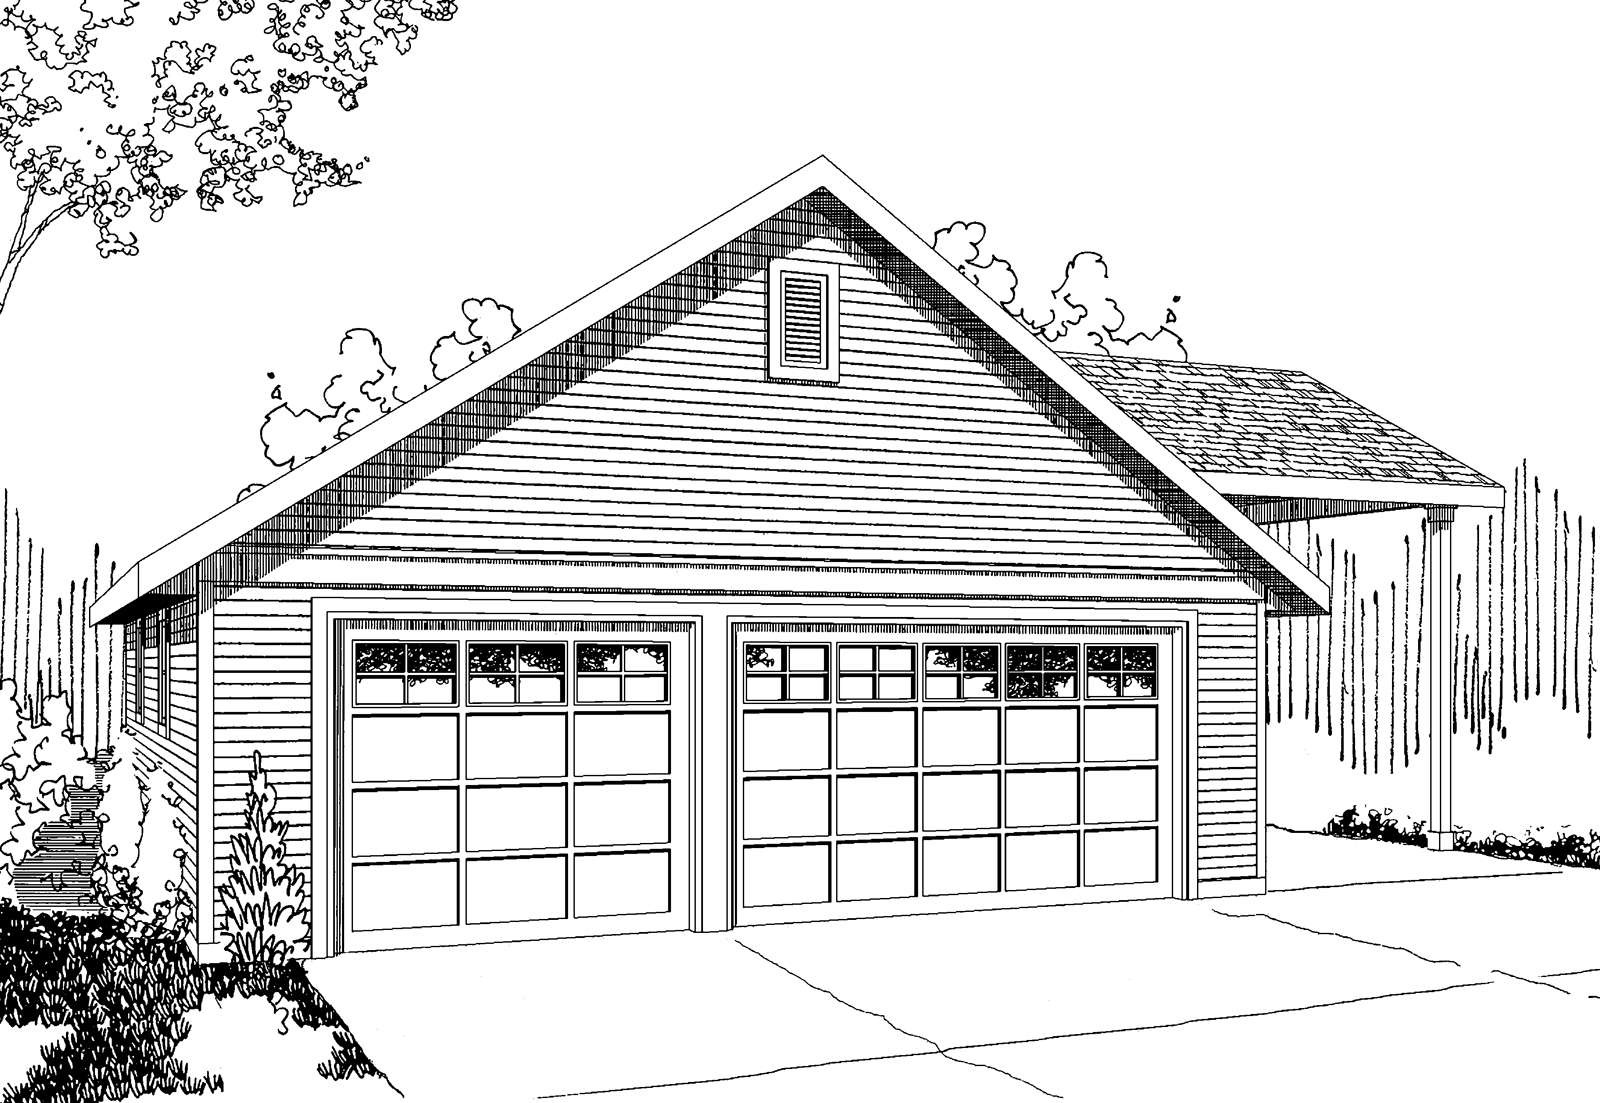 Garage with RV Parking 20-064, Garage Plans